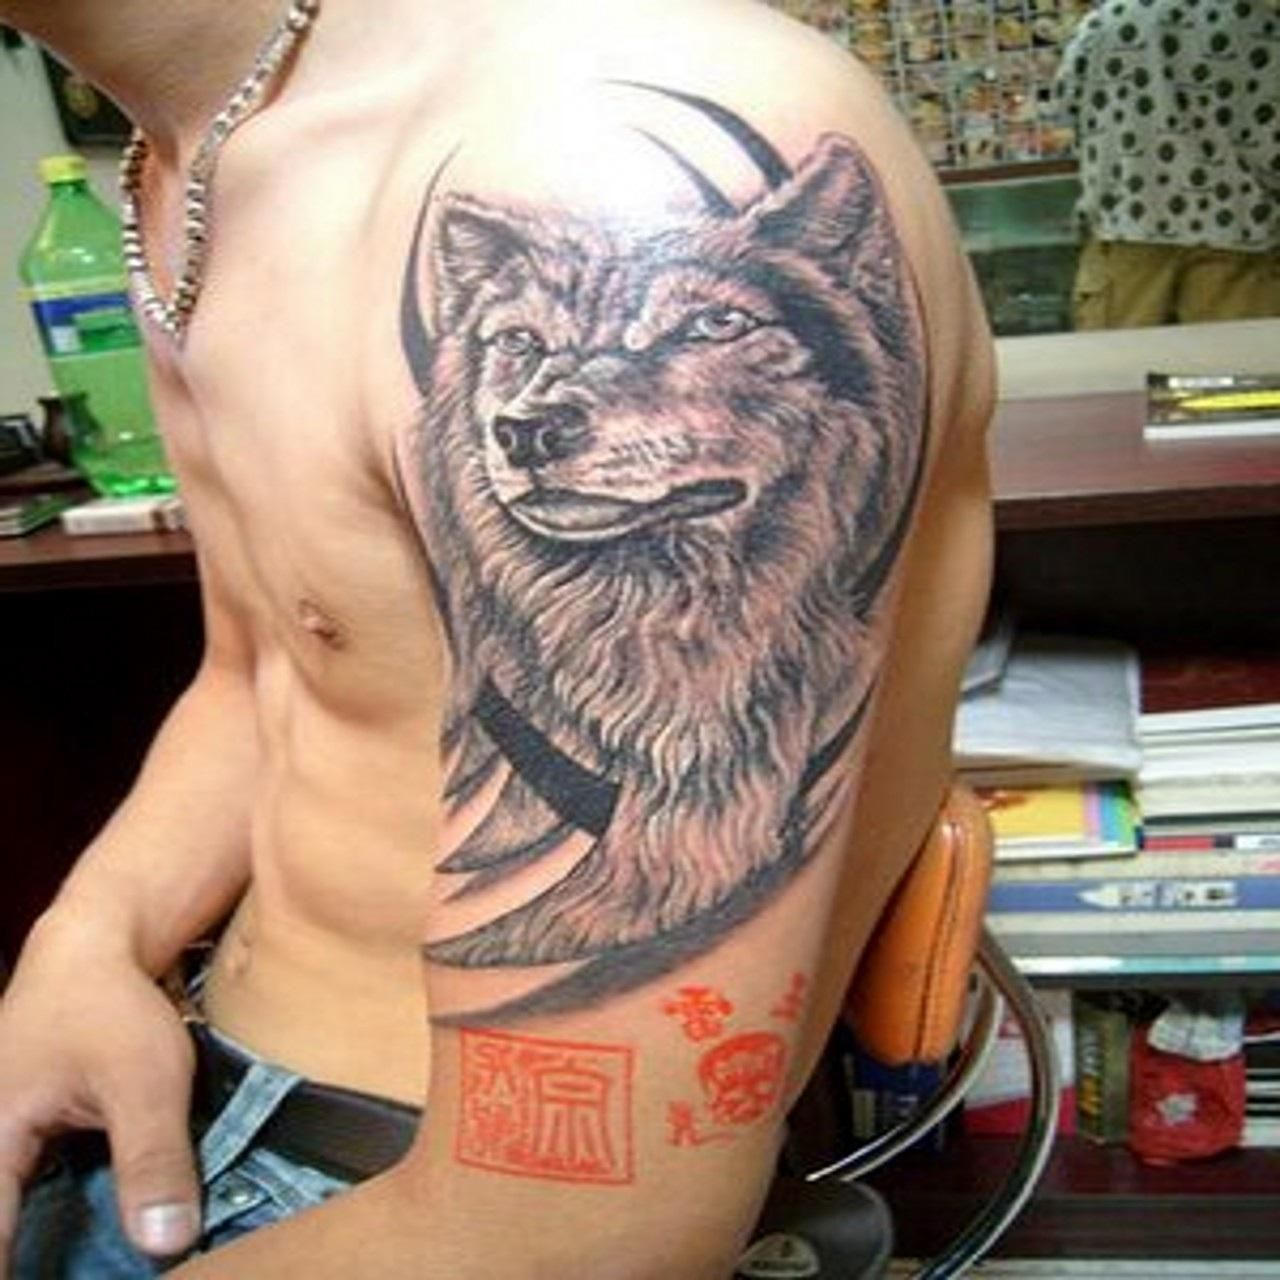 Tattoo tattoo designs and photography you can - Pics Photos Wolf Tattoo Designs For Men 4776472847910934 Jpg